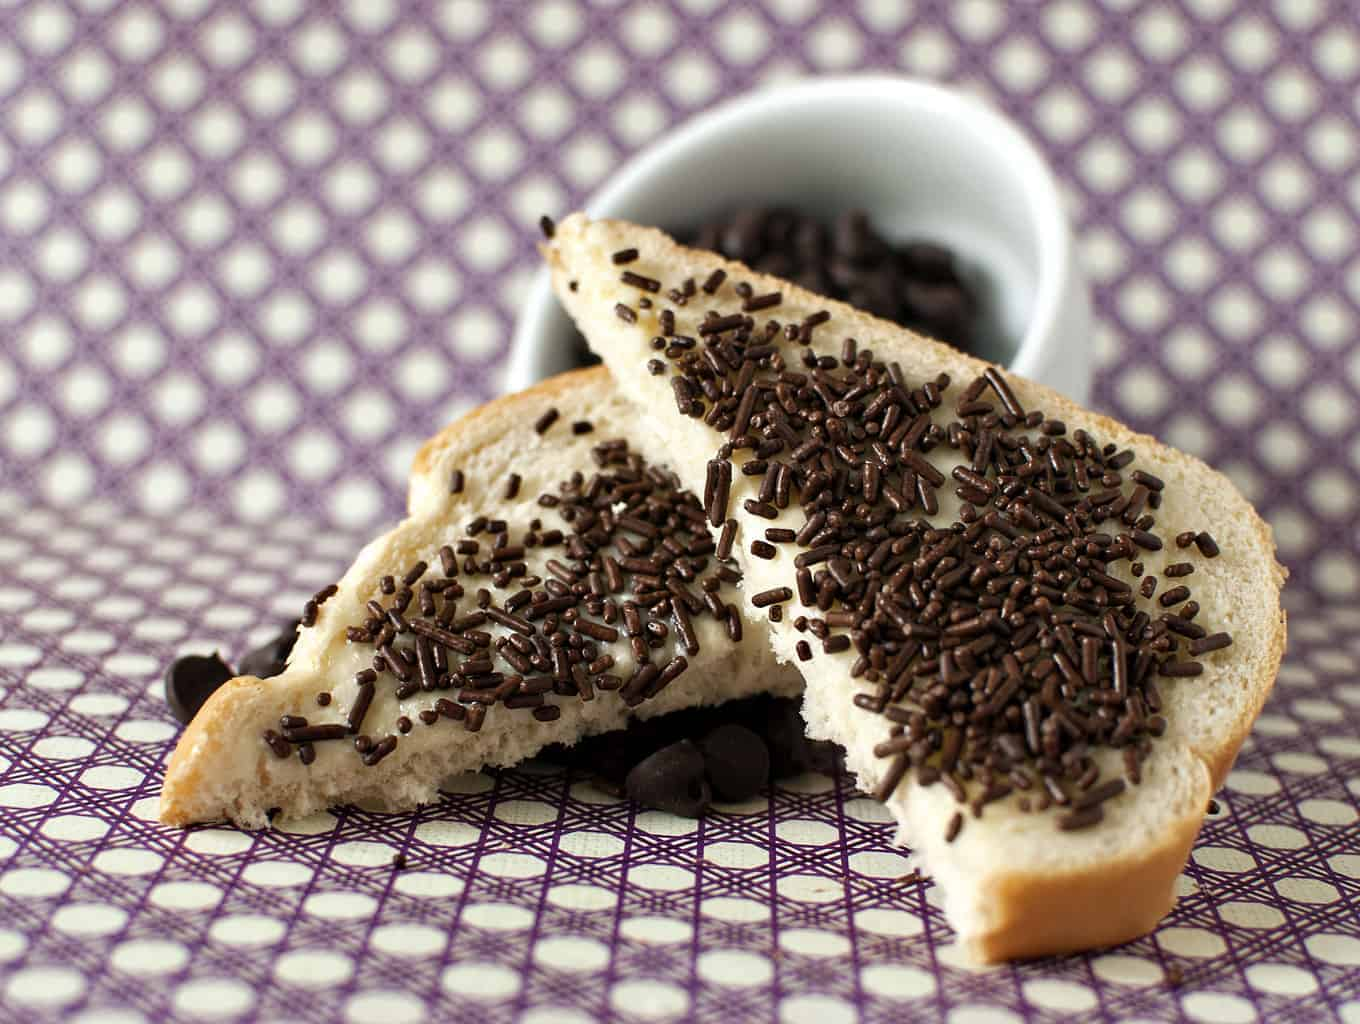 Chocolate Jimmy Sandwiches - a special treat in honor of my mom, on Mother's Day